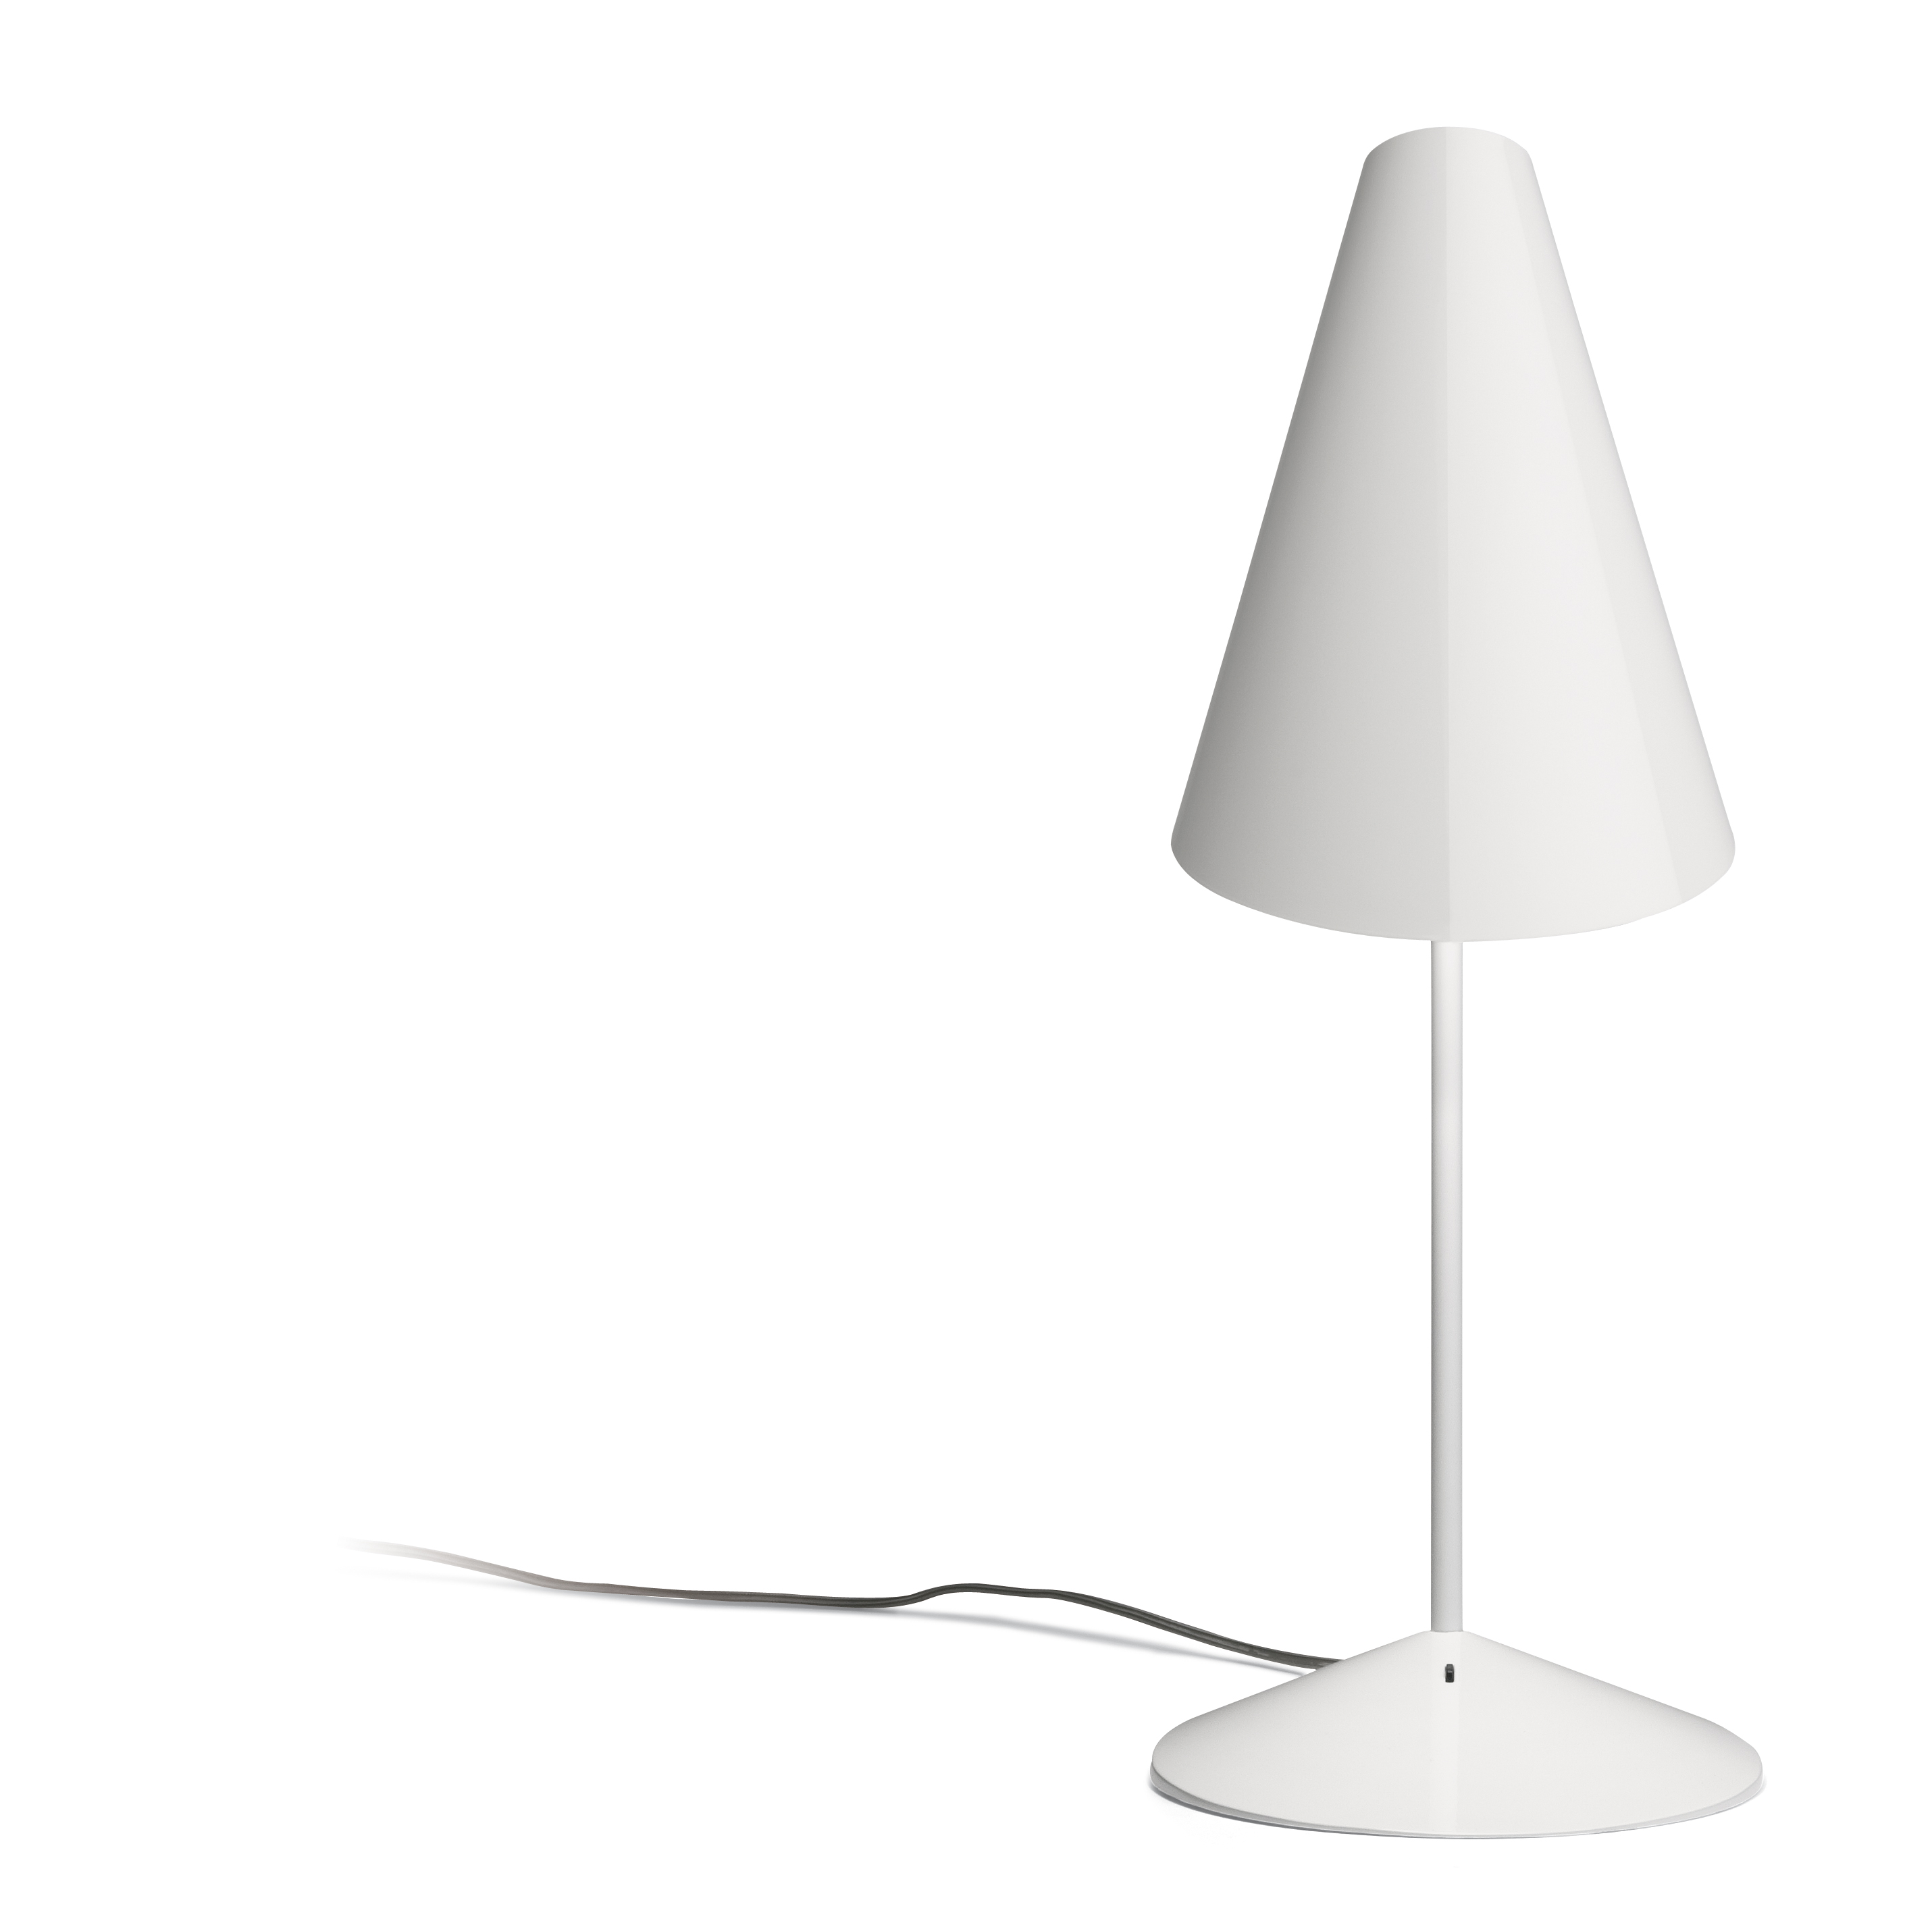 I.Cono Lampe de table 56cm 1xE14 46w - Laqué blanc brillant